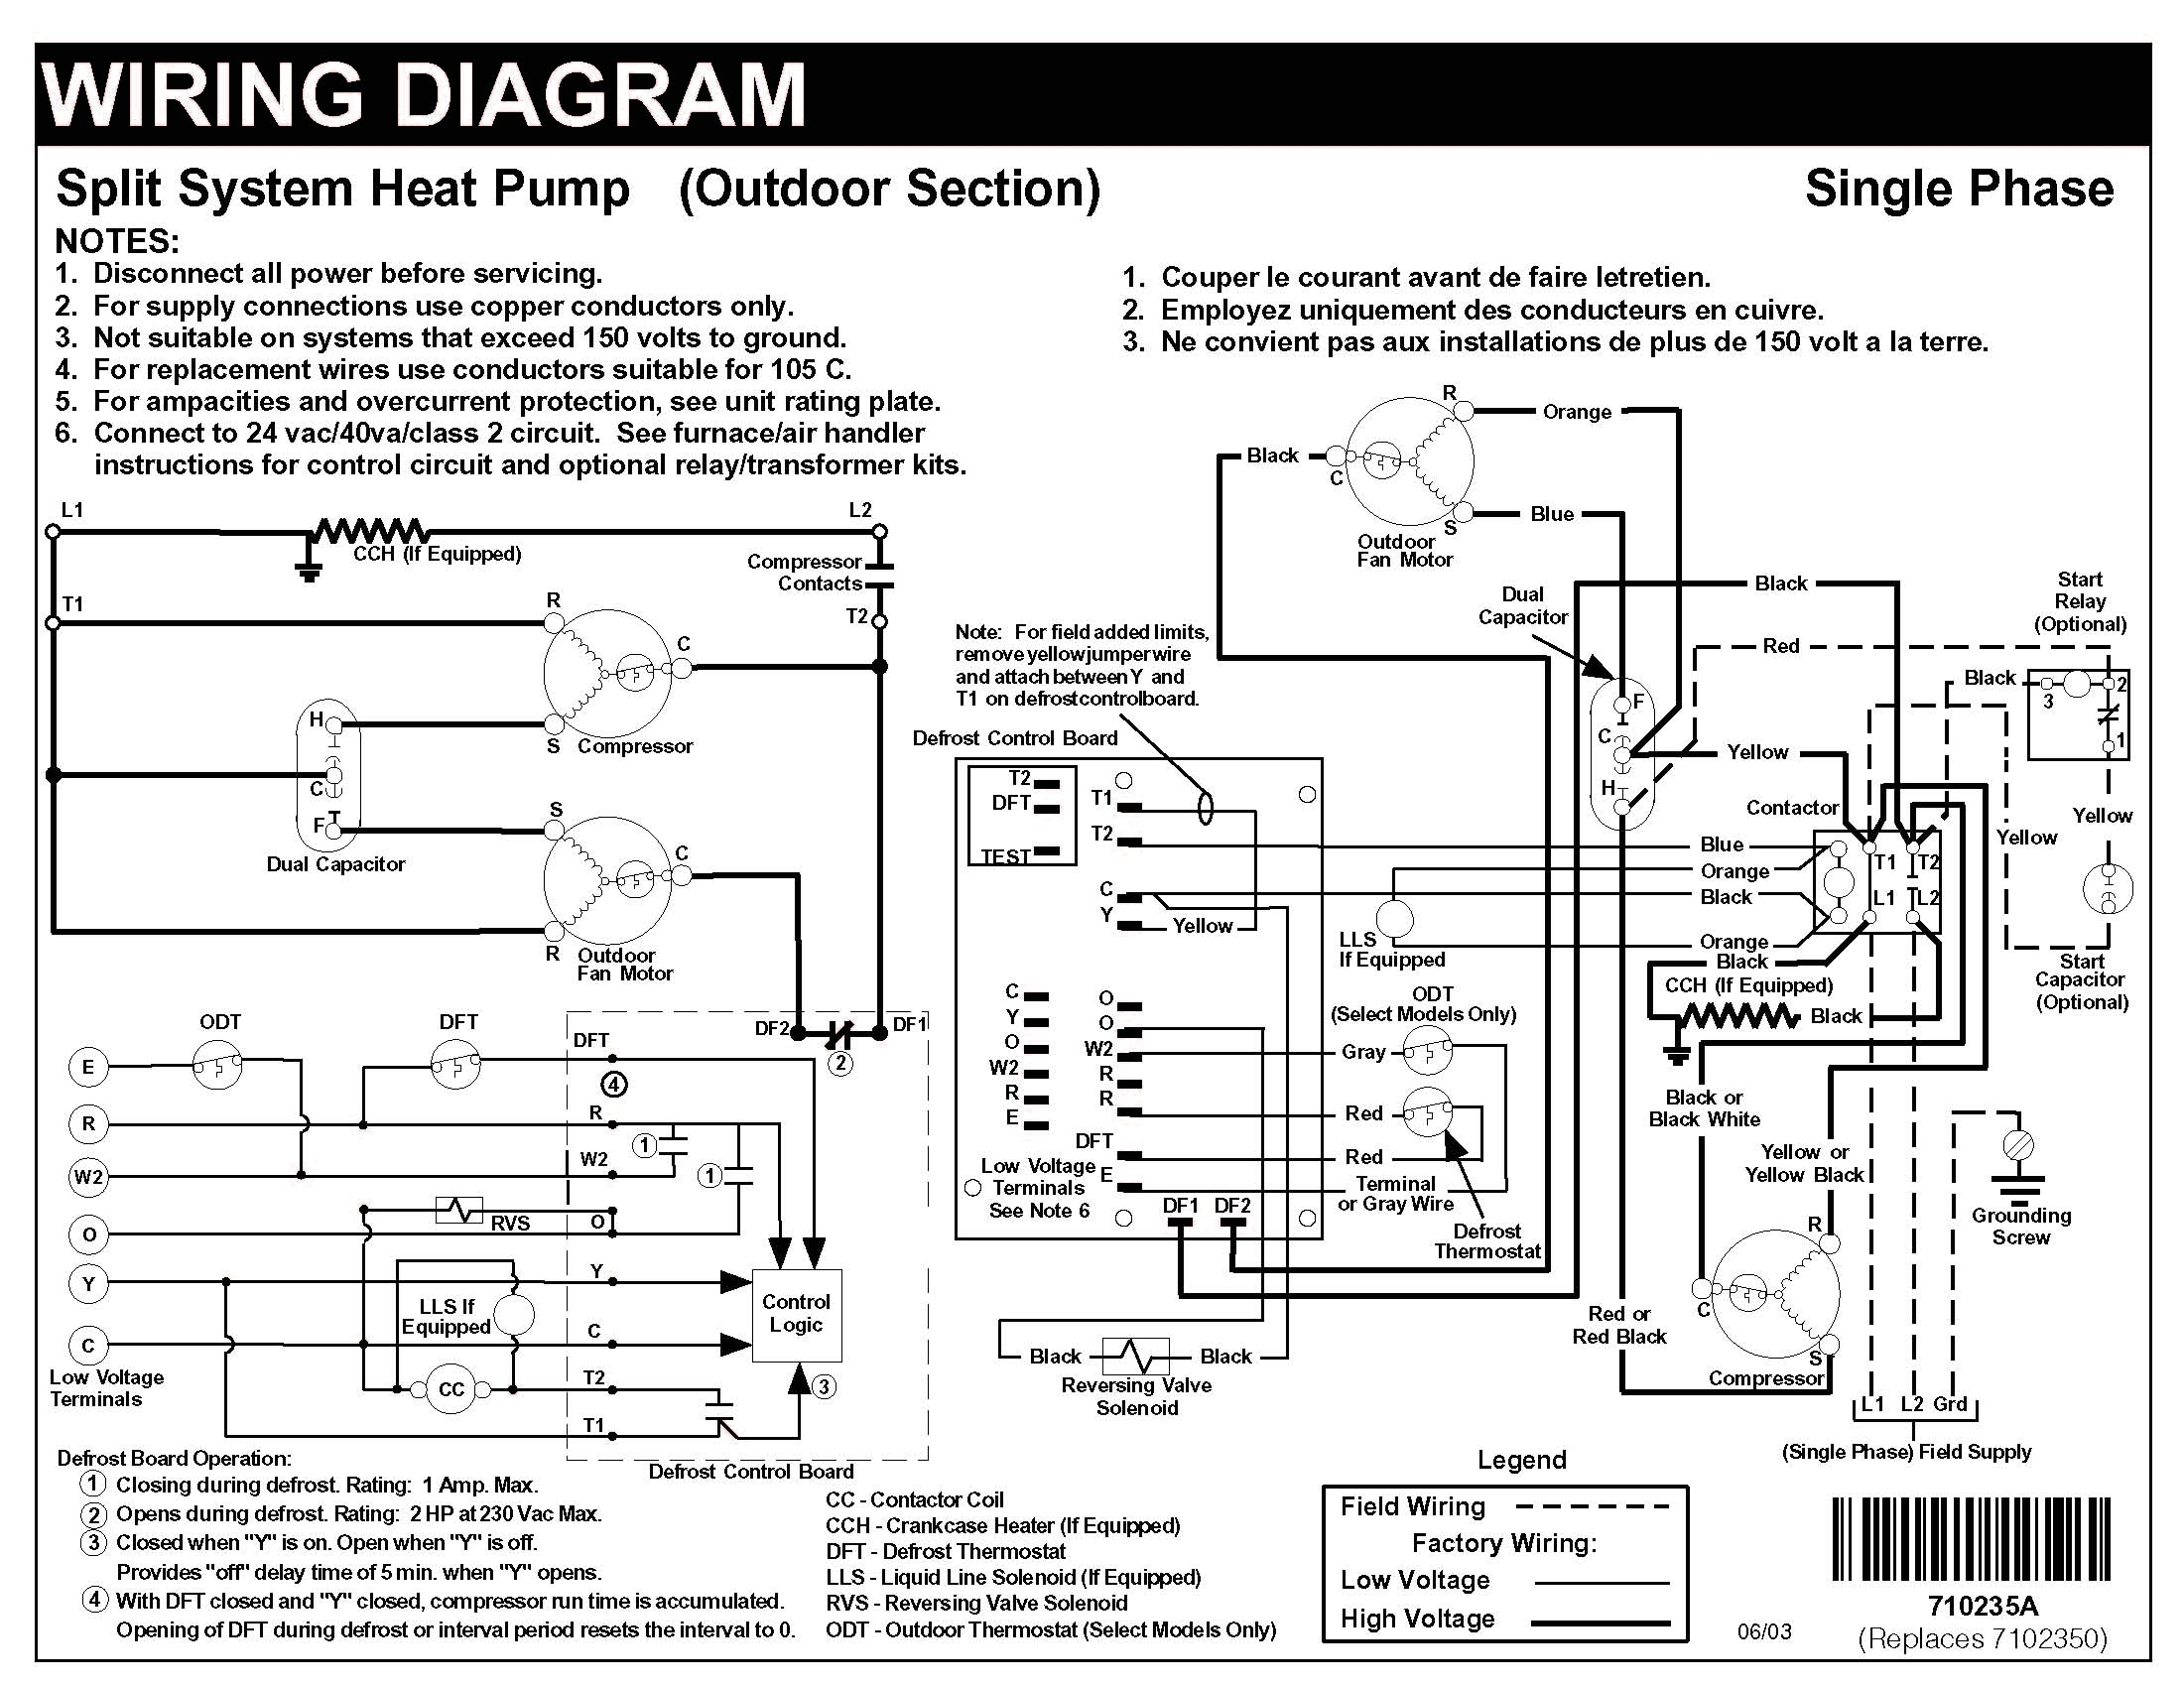 Hvac Heater Wiring Diagram | Schematic Diagram - 5 Wire To 4 Wire Trailer Wiring Diagram